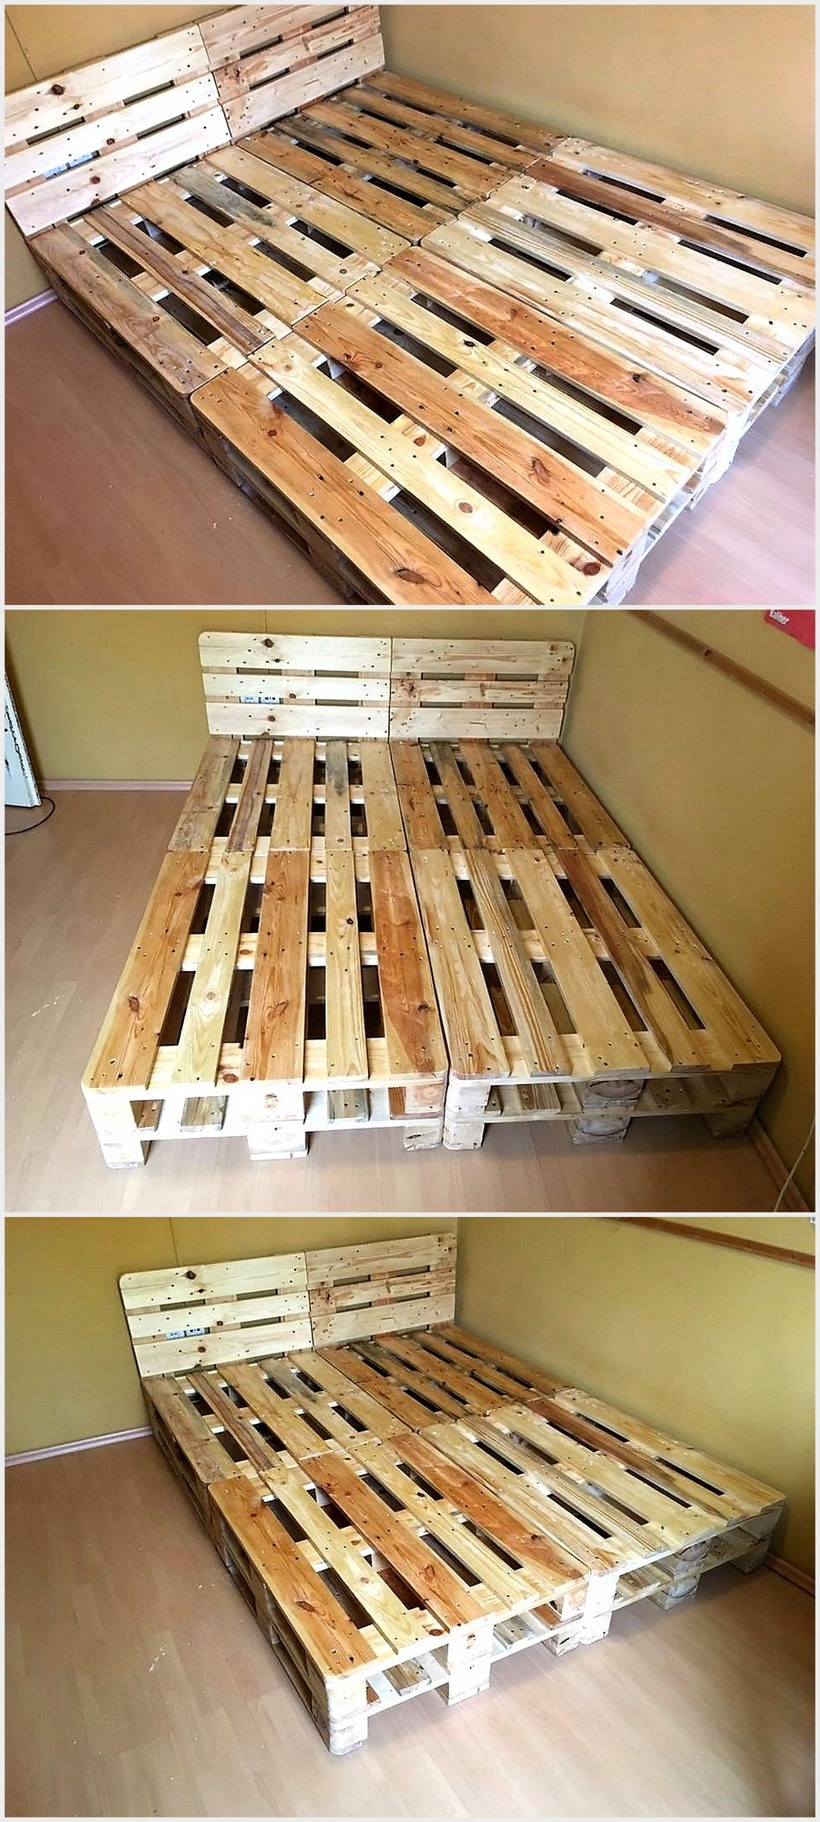 Cheap Home Furnishing With Wooden Pallets | Wood Pallet ... on Pallet Bed Room  id=16943